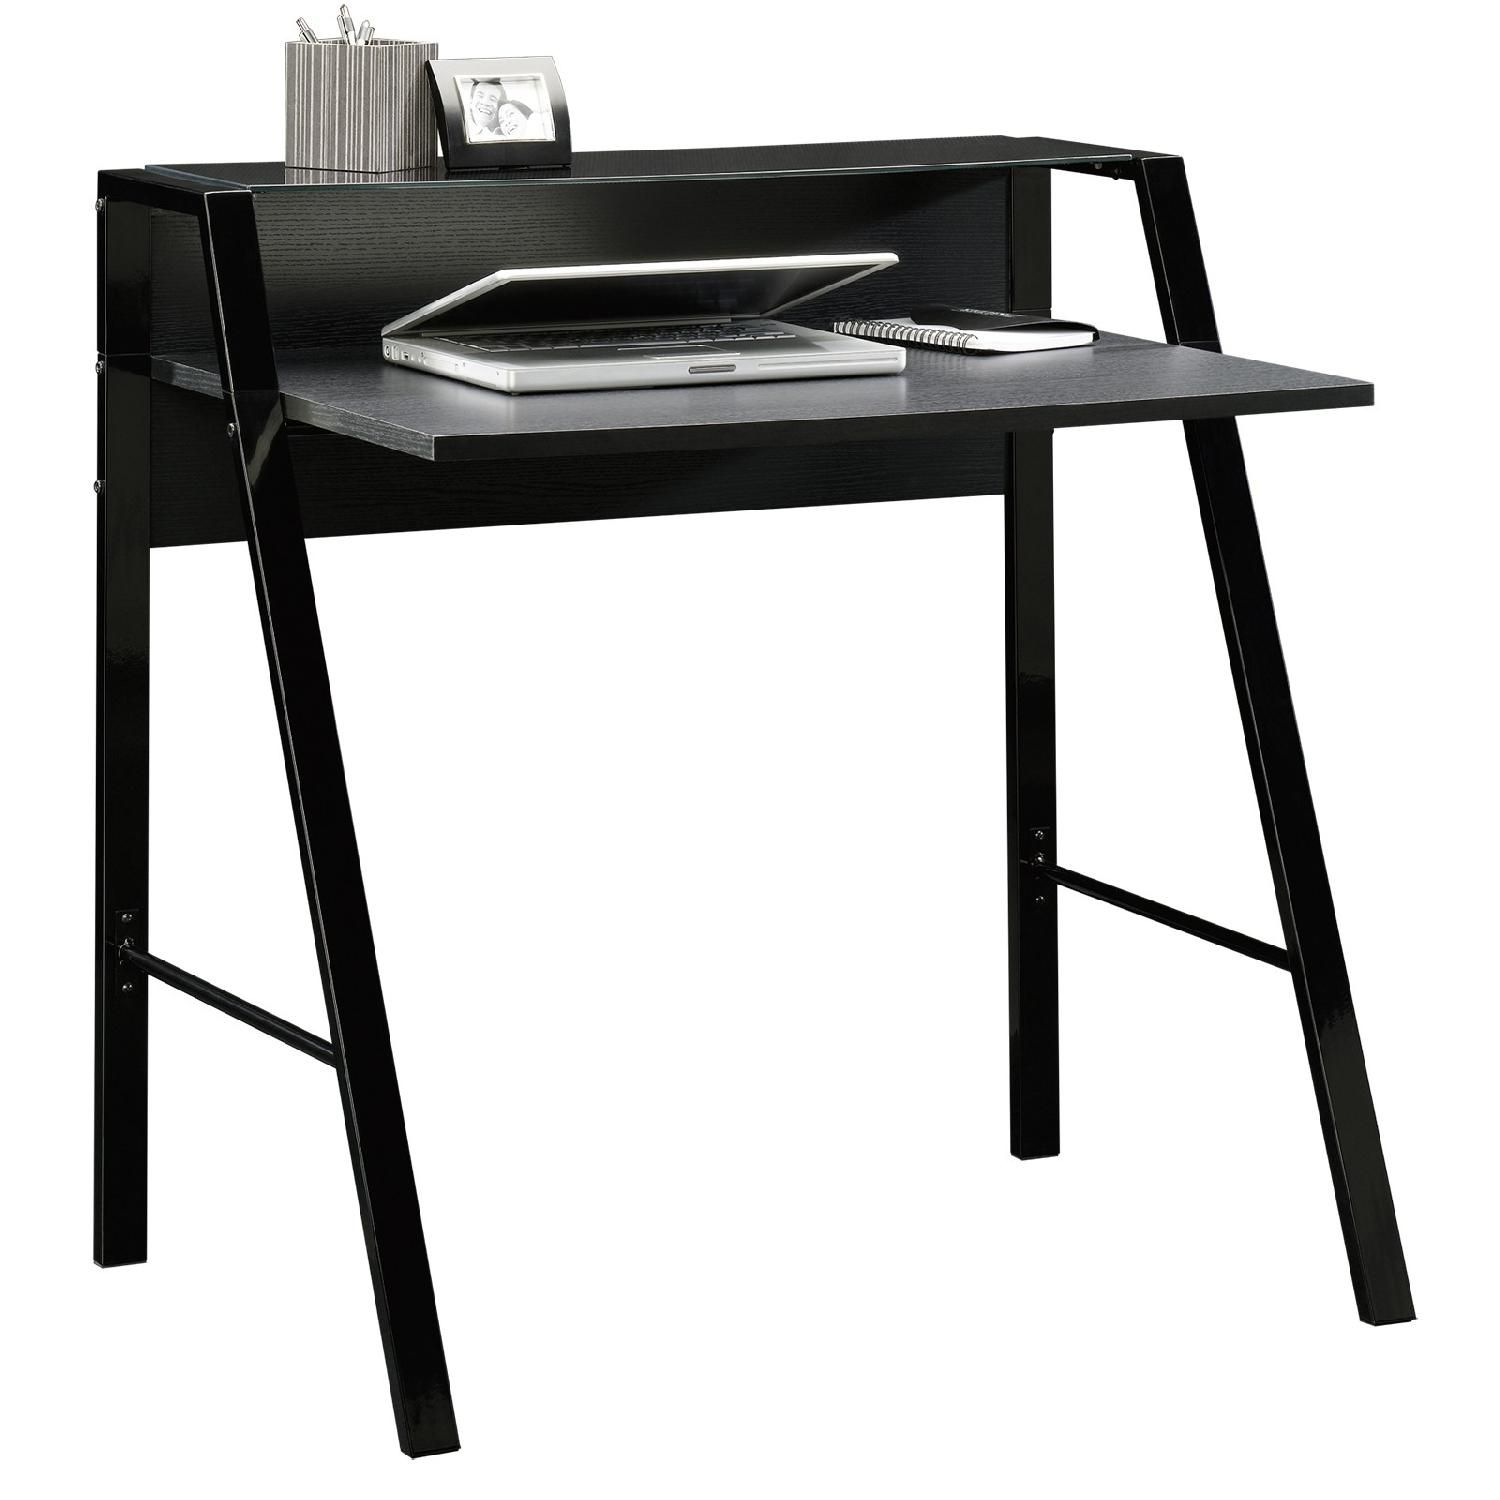 Sauder Black Desk Sauder Furniture Glass Desk Office Black Desk